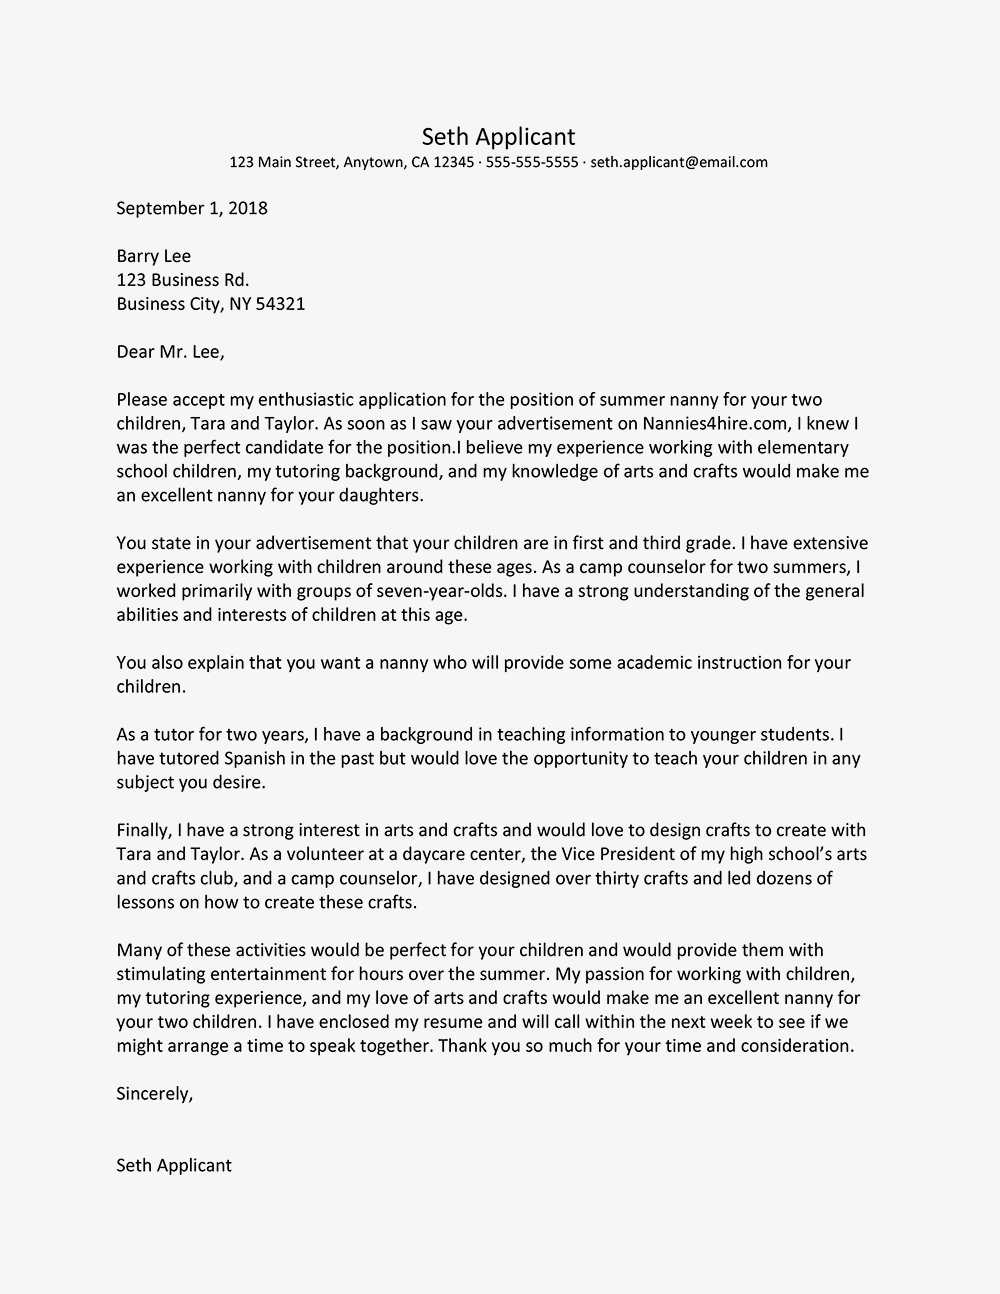 nanny cover letter sample nanny resume cover letter